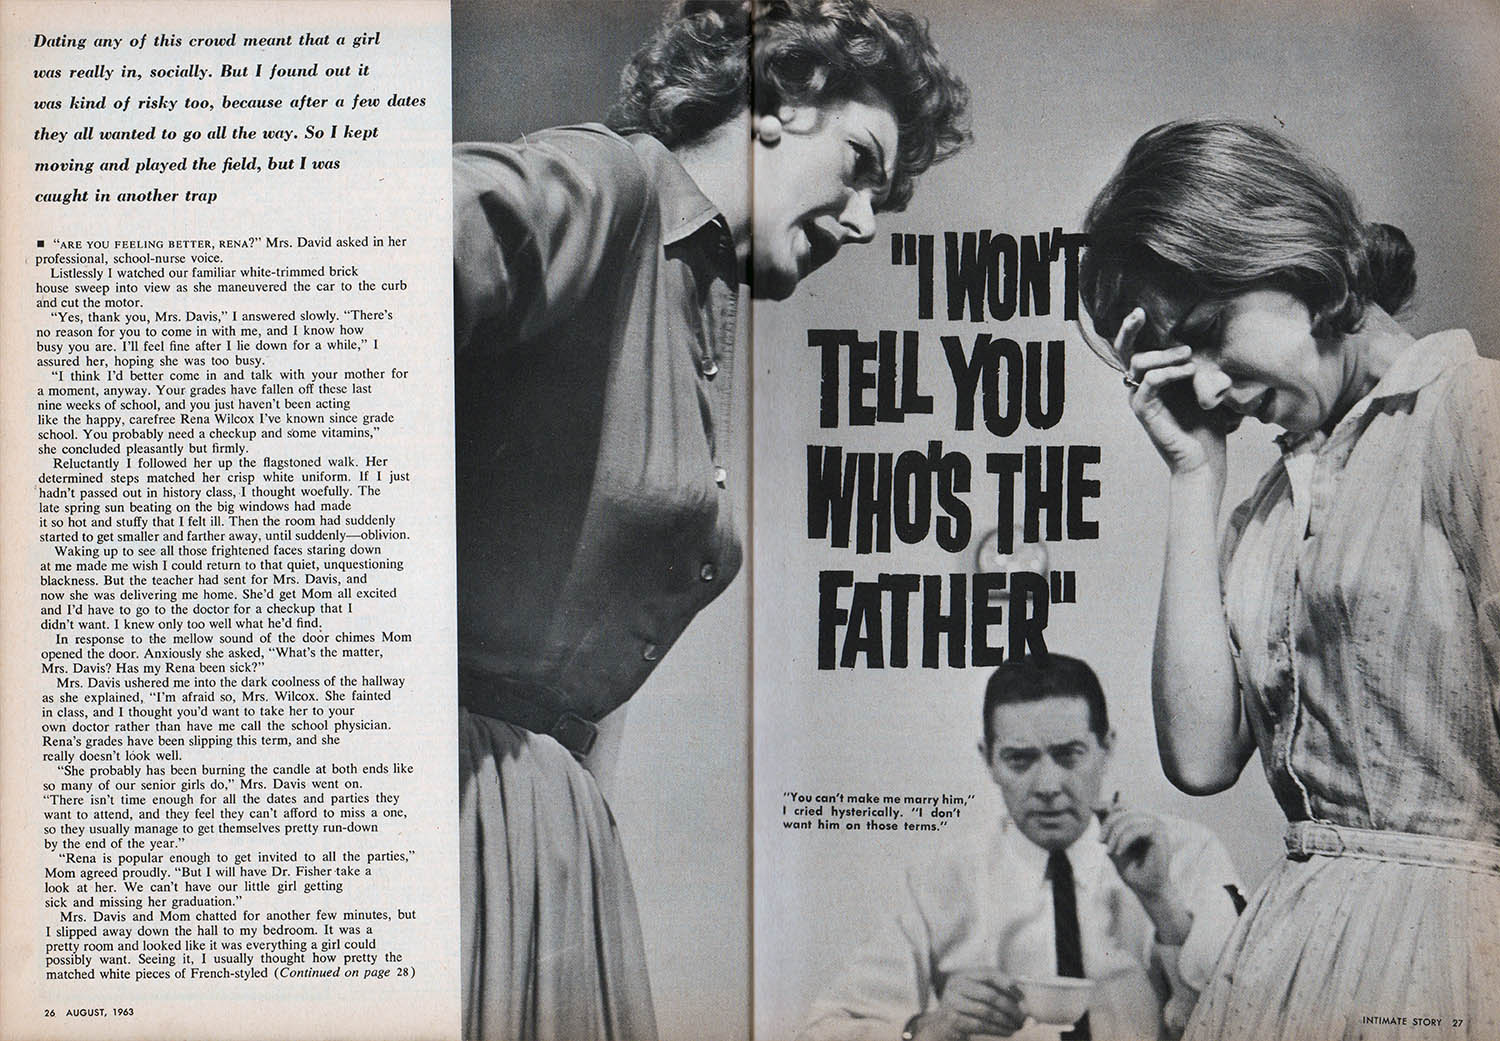 intimate-story-august-1963-3